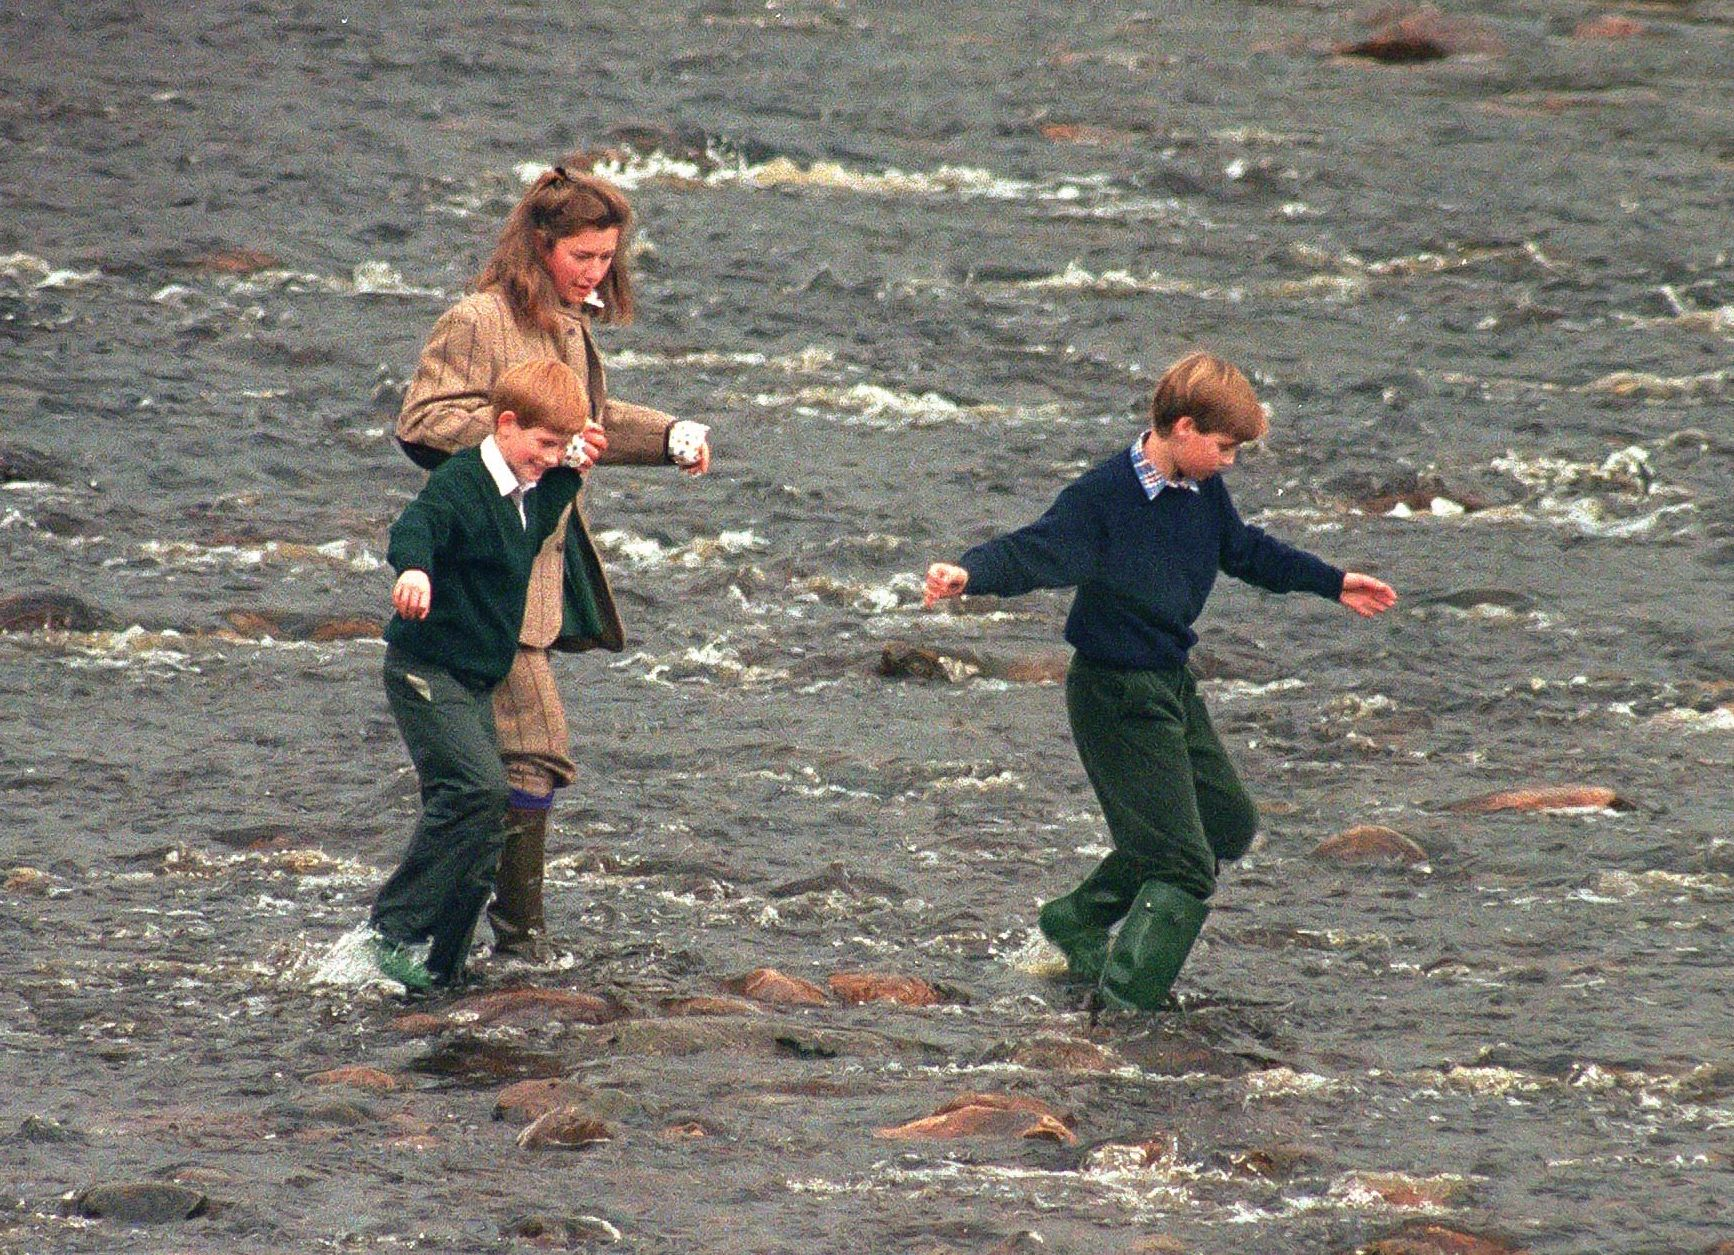 Royal Nanny, Tiggy Legge-Bourke, Prince William,and Prince Harry walk in the River Gairn, near the Balmoral Estate on October 22, 1994 in Balmoral, Scotland   Getty Images